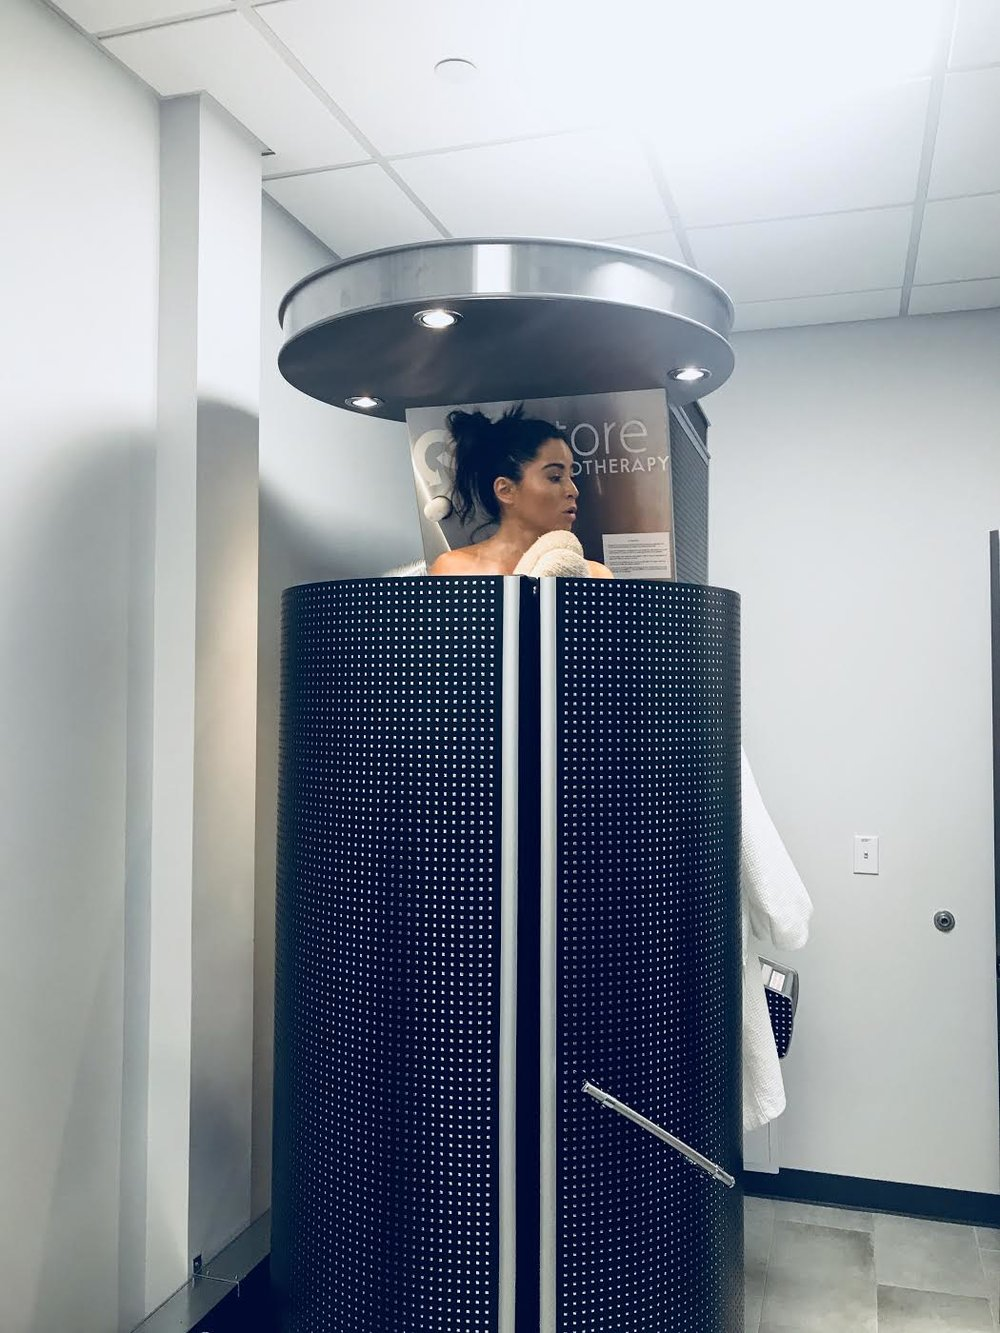 Cryotherapy for the first time